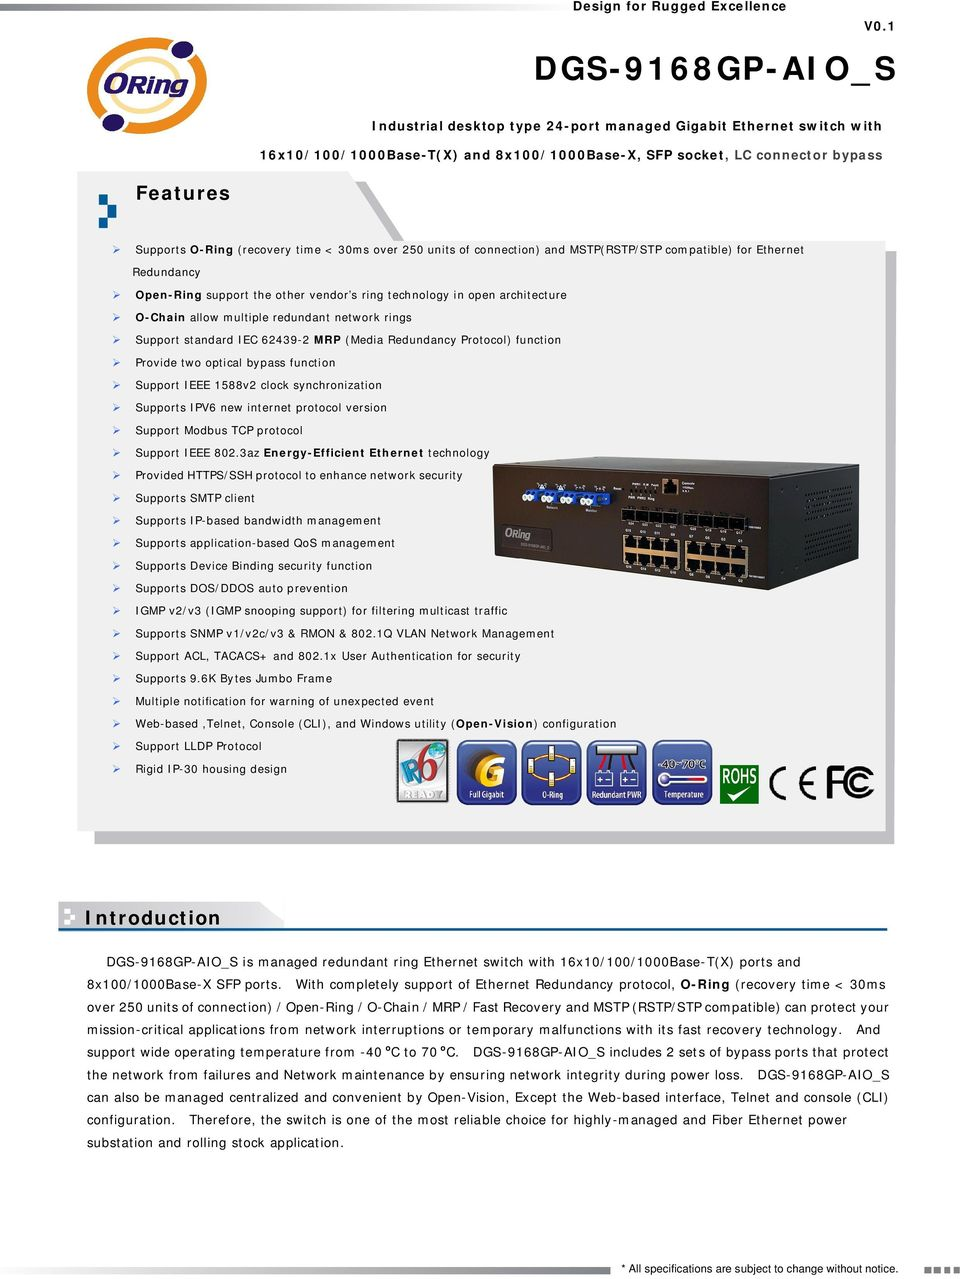 Redundancy Protocol) function Provide two optical bypass function Support IEEE 1588v2 clock synchronization Supports IPV6 new internet protocol version Support Modbus TCP protocol Support IEEE 802.